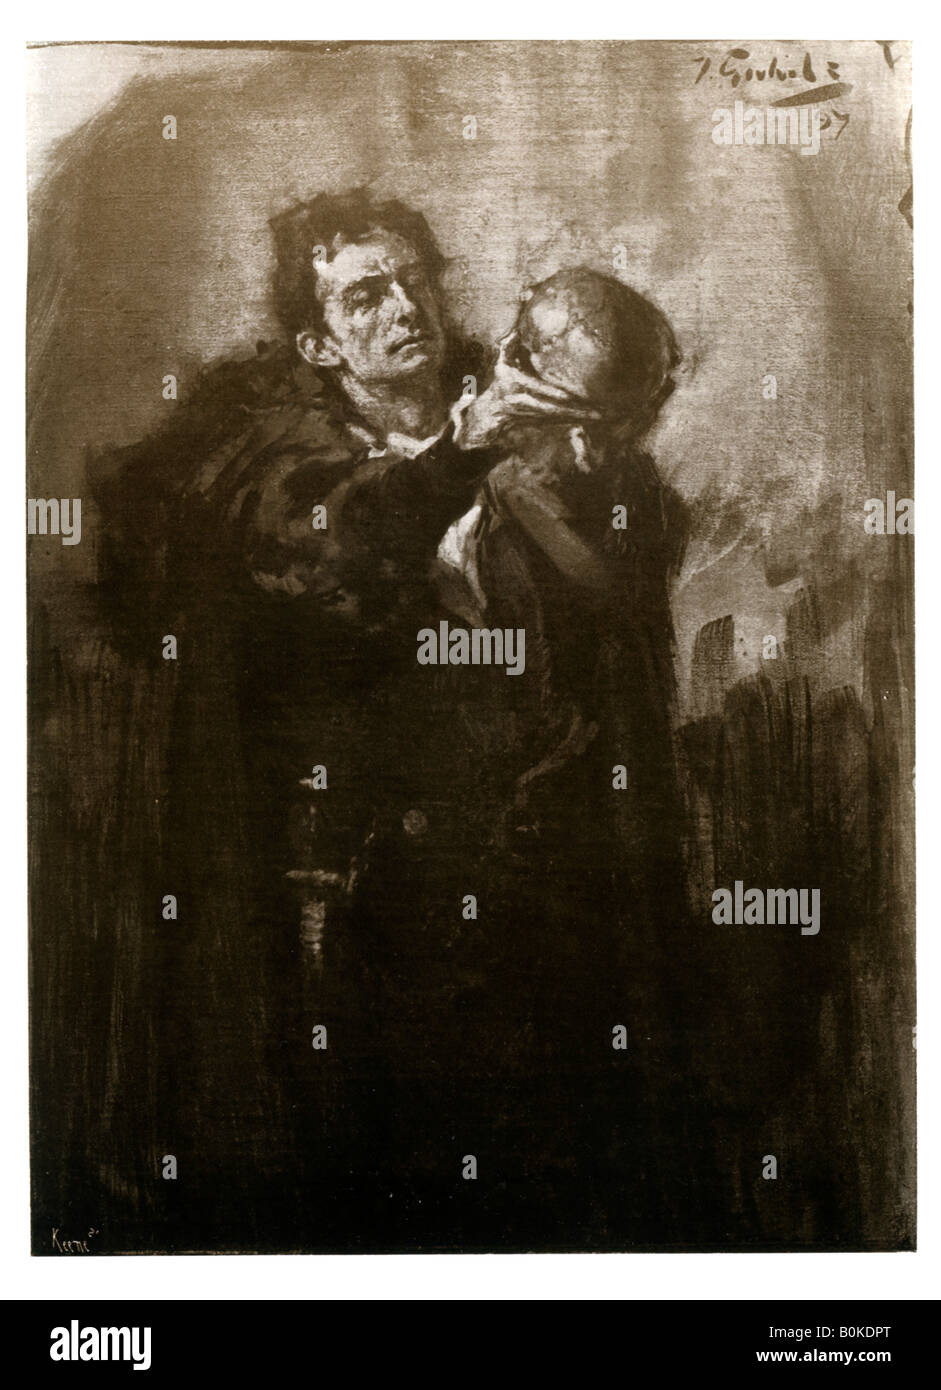 Forbes-Robertson as Hamlet, late 19th century.Artist: John Percival Gulich - Stock Image